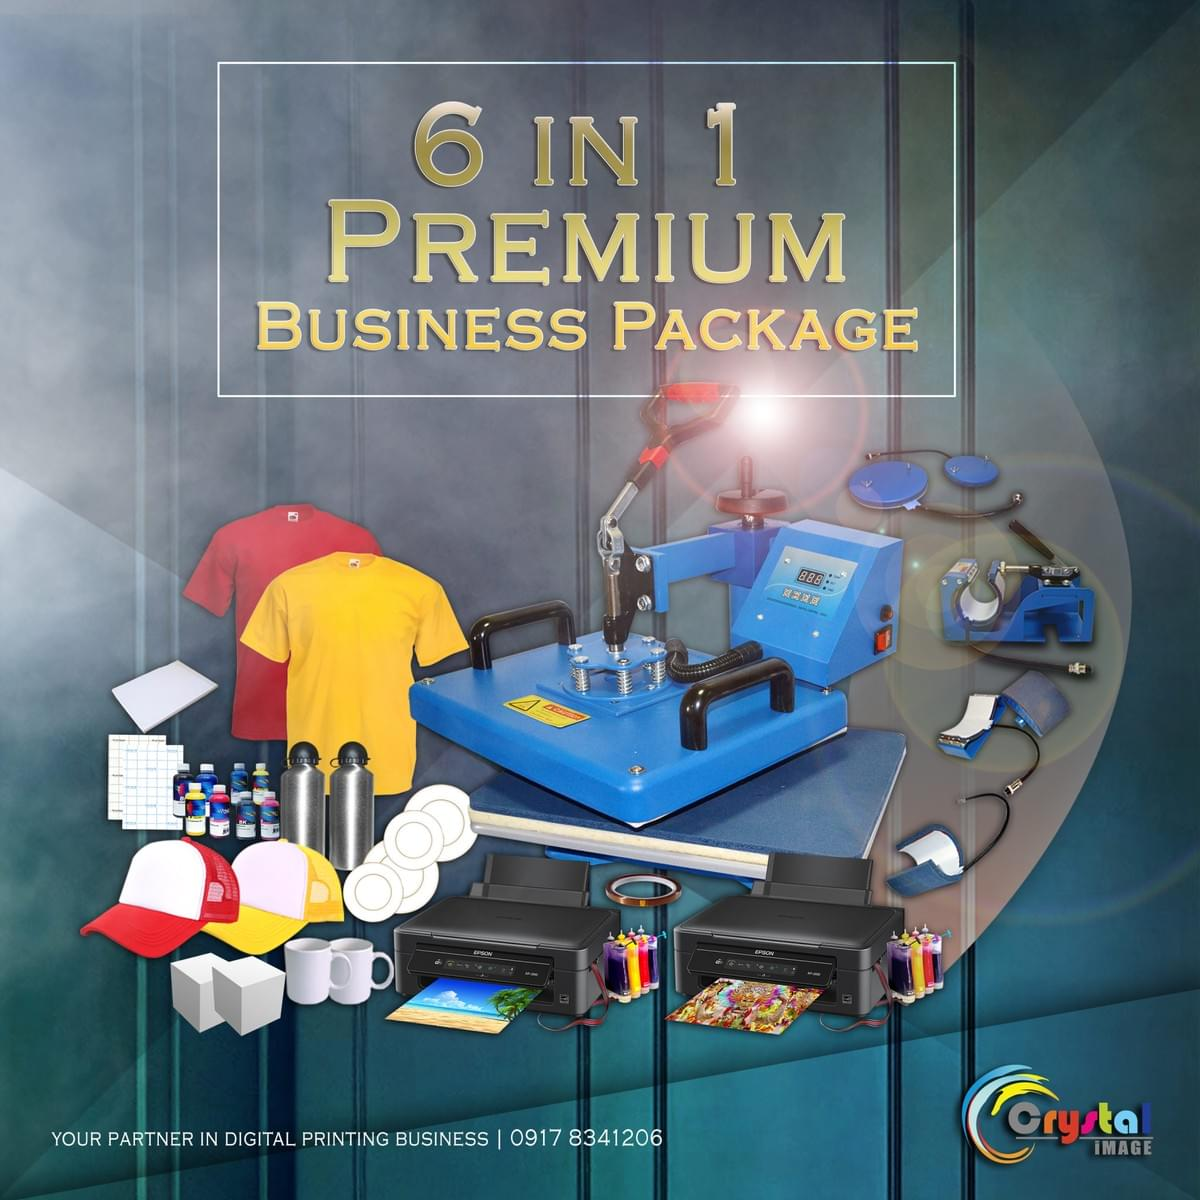 Sublimation printing guide Philippines, 6in1 Printing Package Supplier